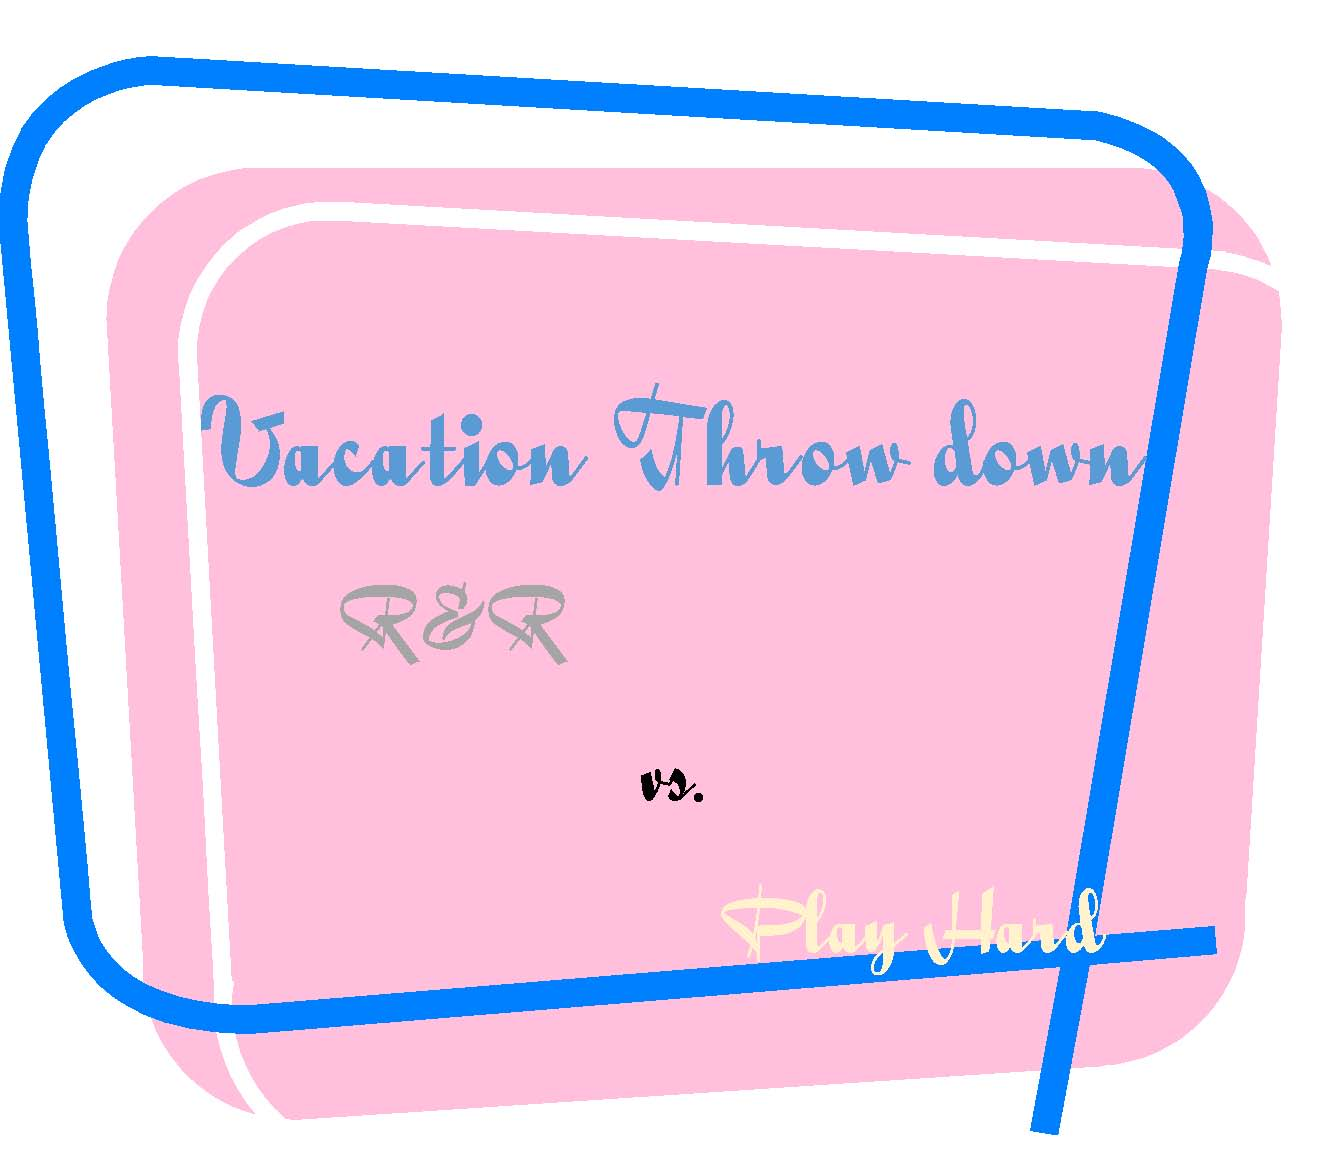 Vacation Throw down title page